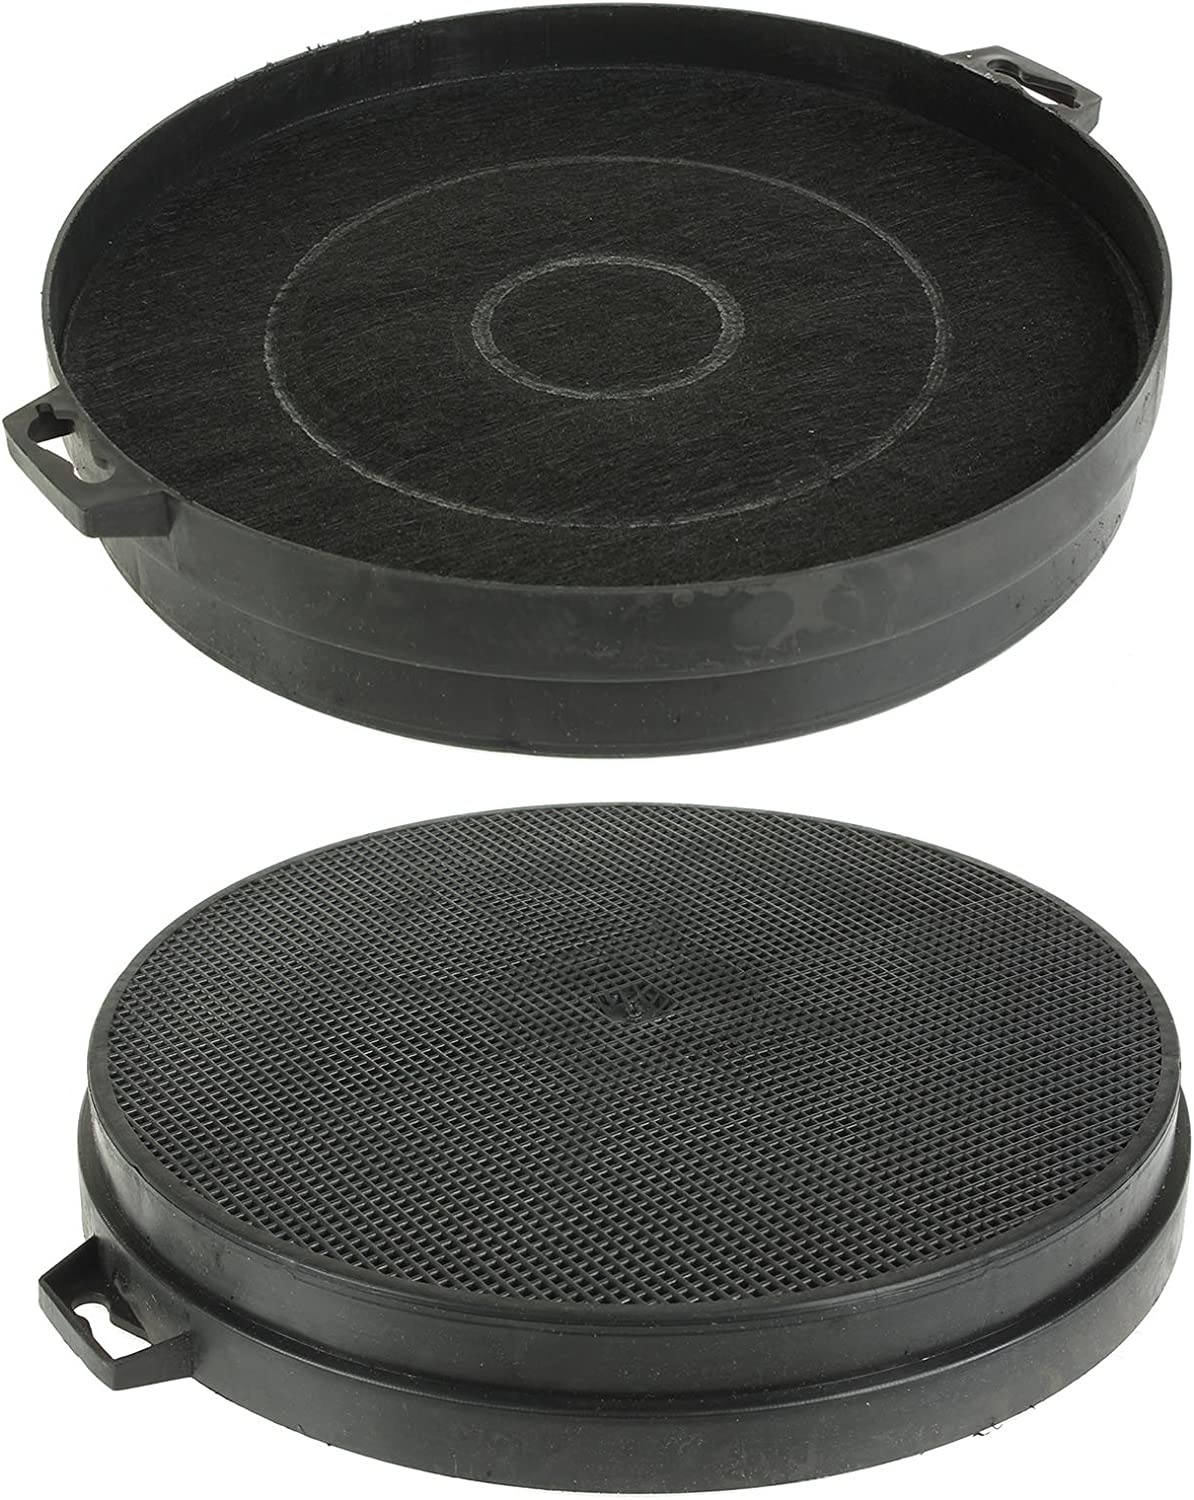 Pack of 2 Spares2go Charcoal Vent Filter For Howden HJA2500 Cooker Hoods